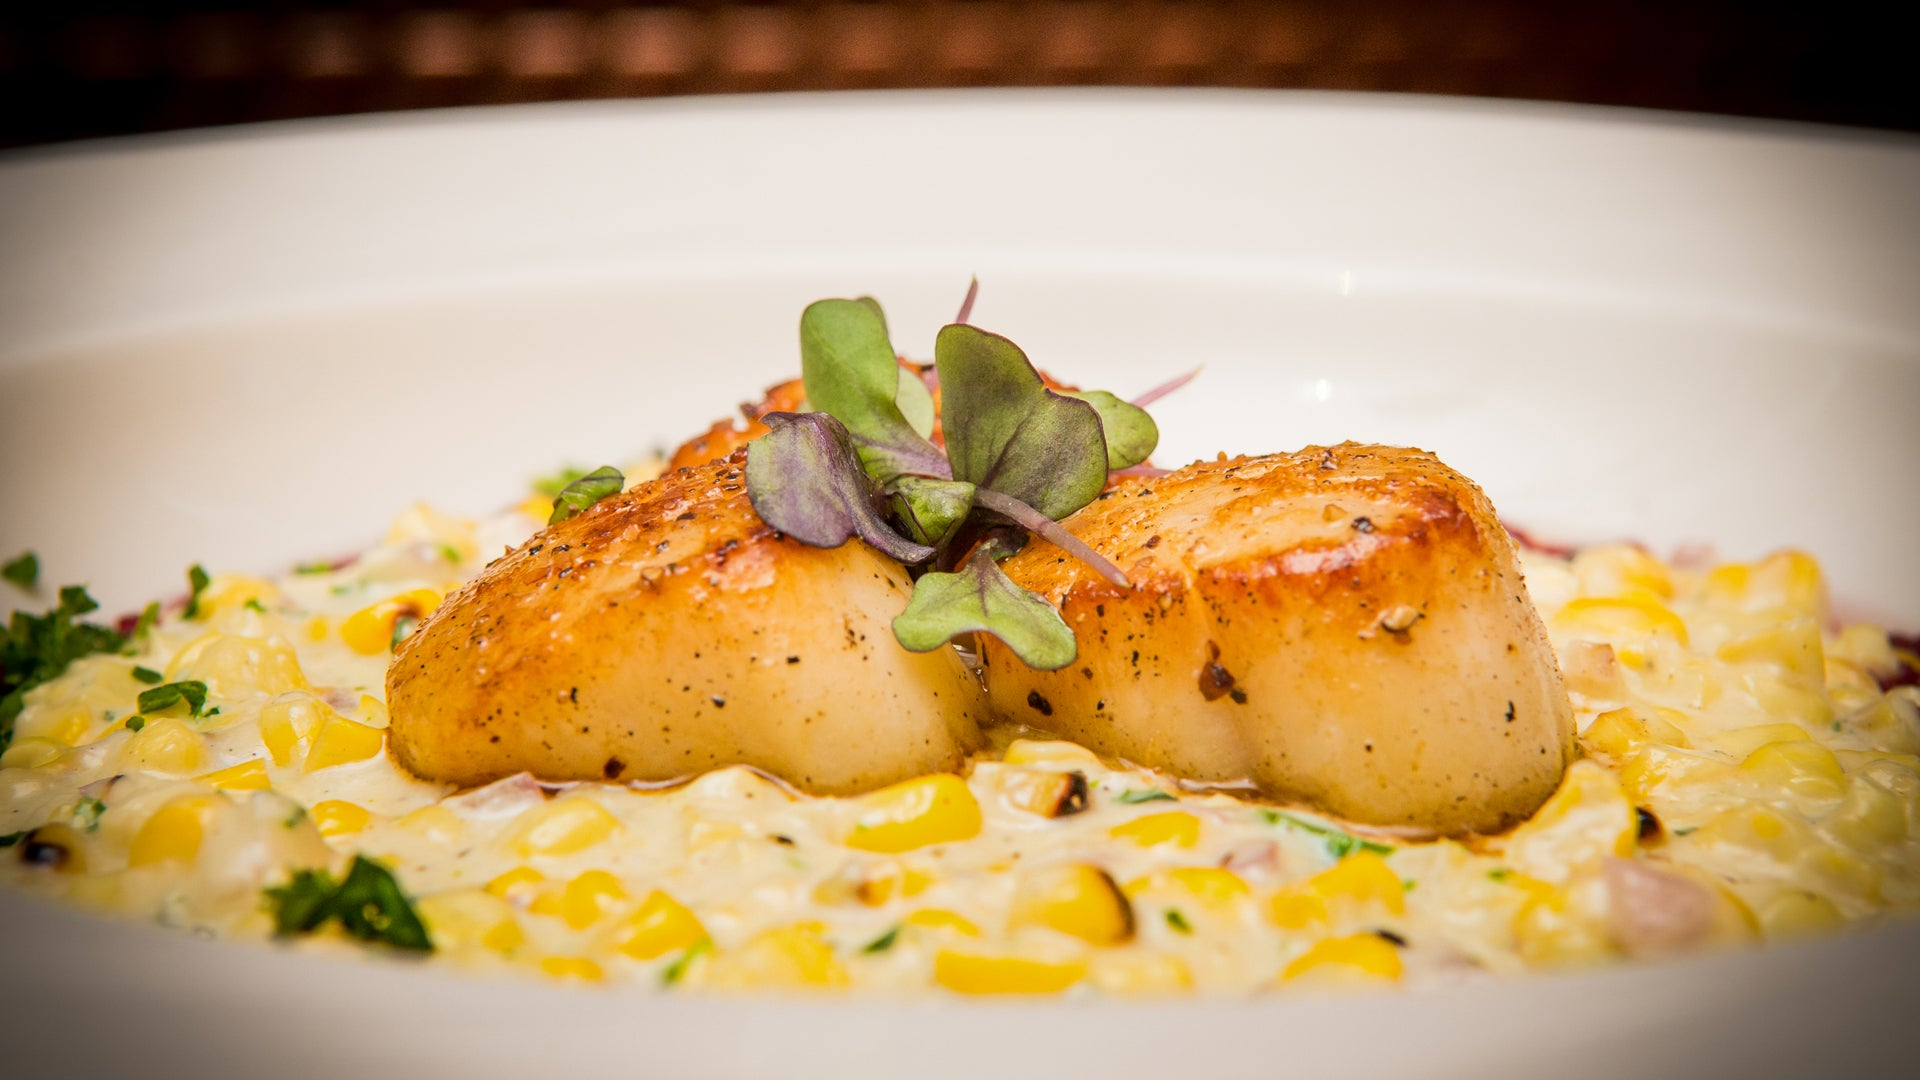 Seared Scallops with Corn Purée